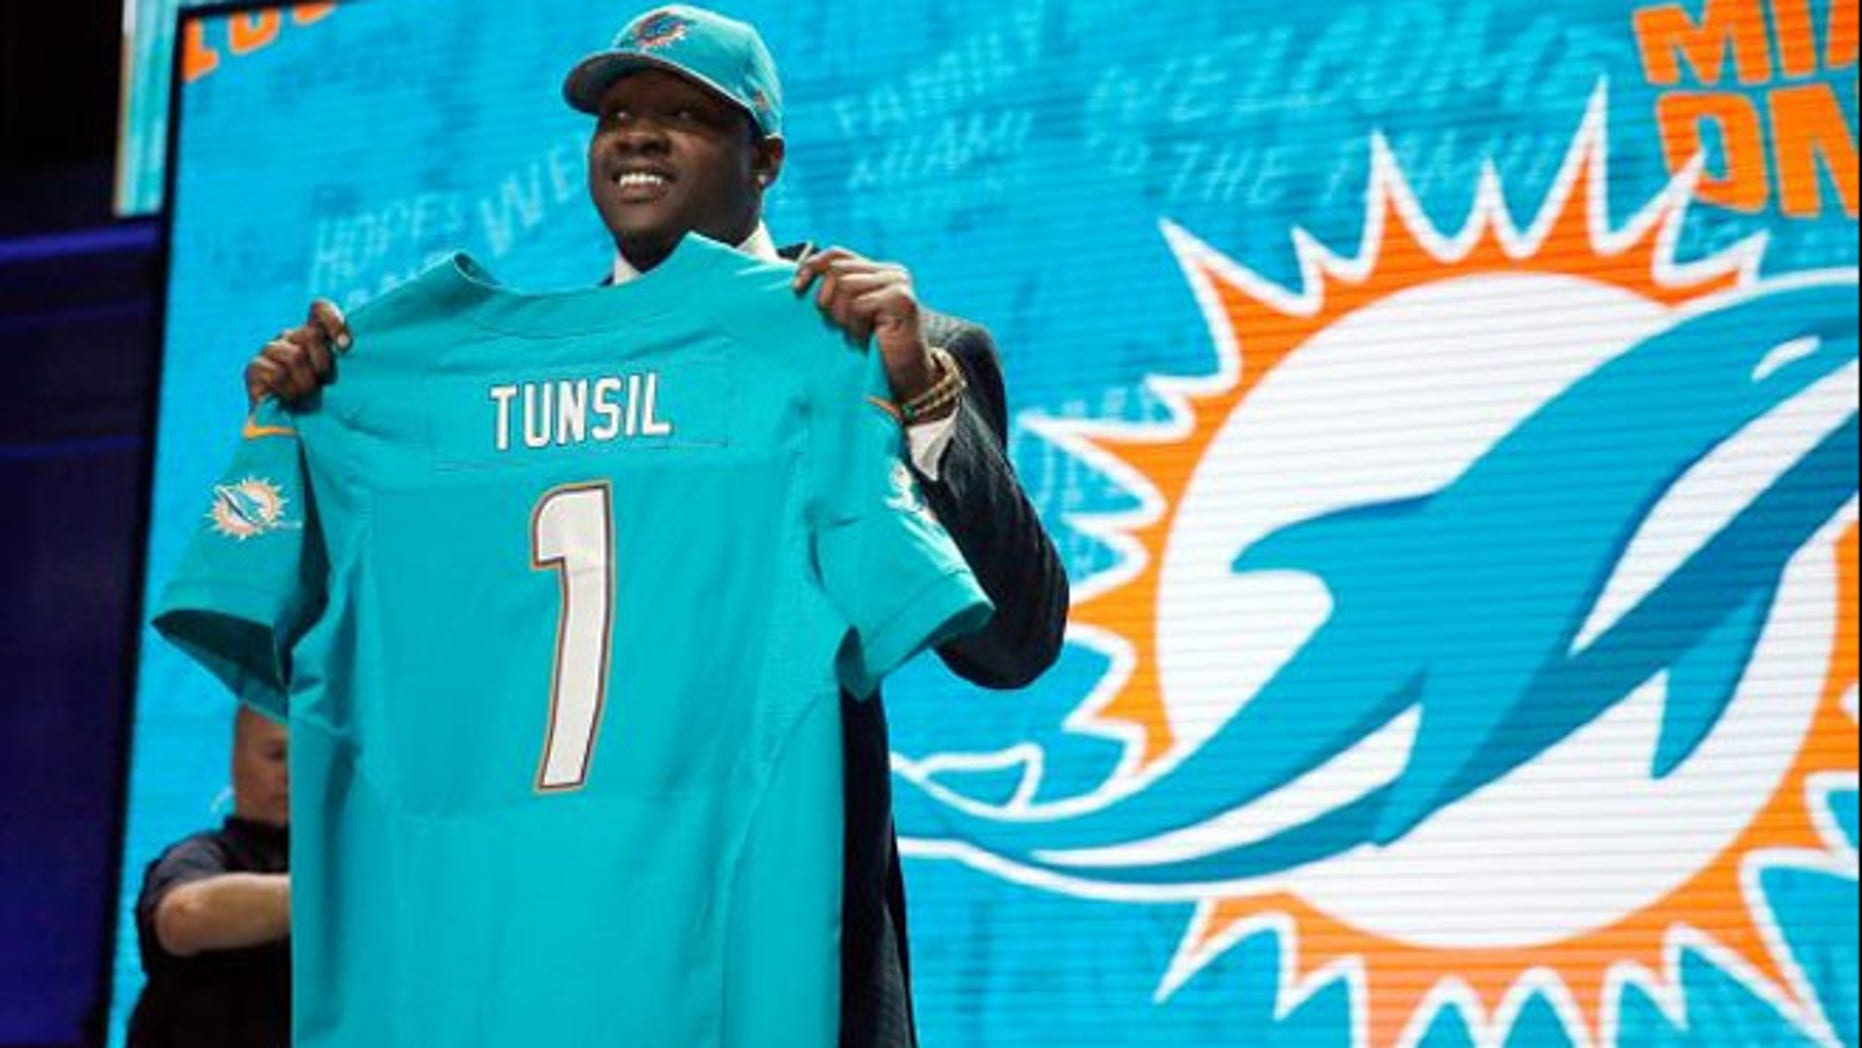 Ole Miss offensive tackle Laremy Tunsil was seen by some experts as the best player in the draft, but his stock dropped after video of him smoking pot surfaced. (AP)